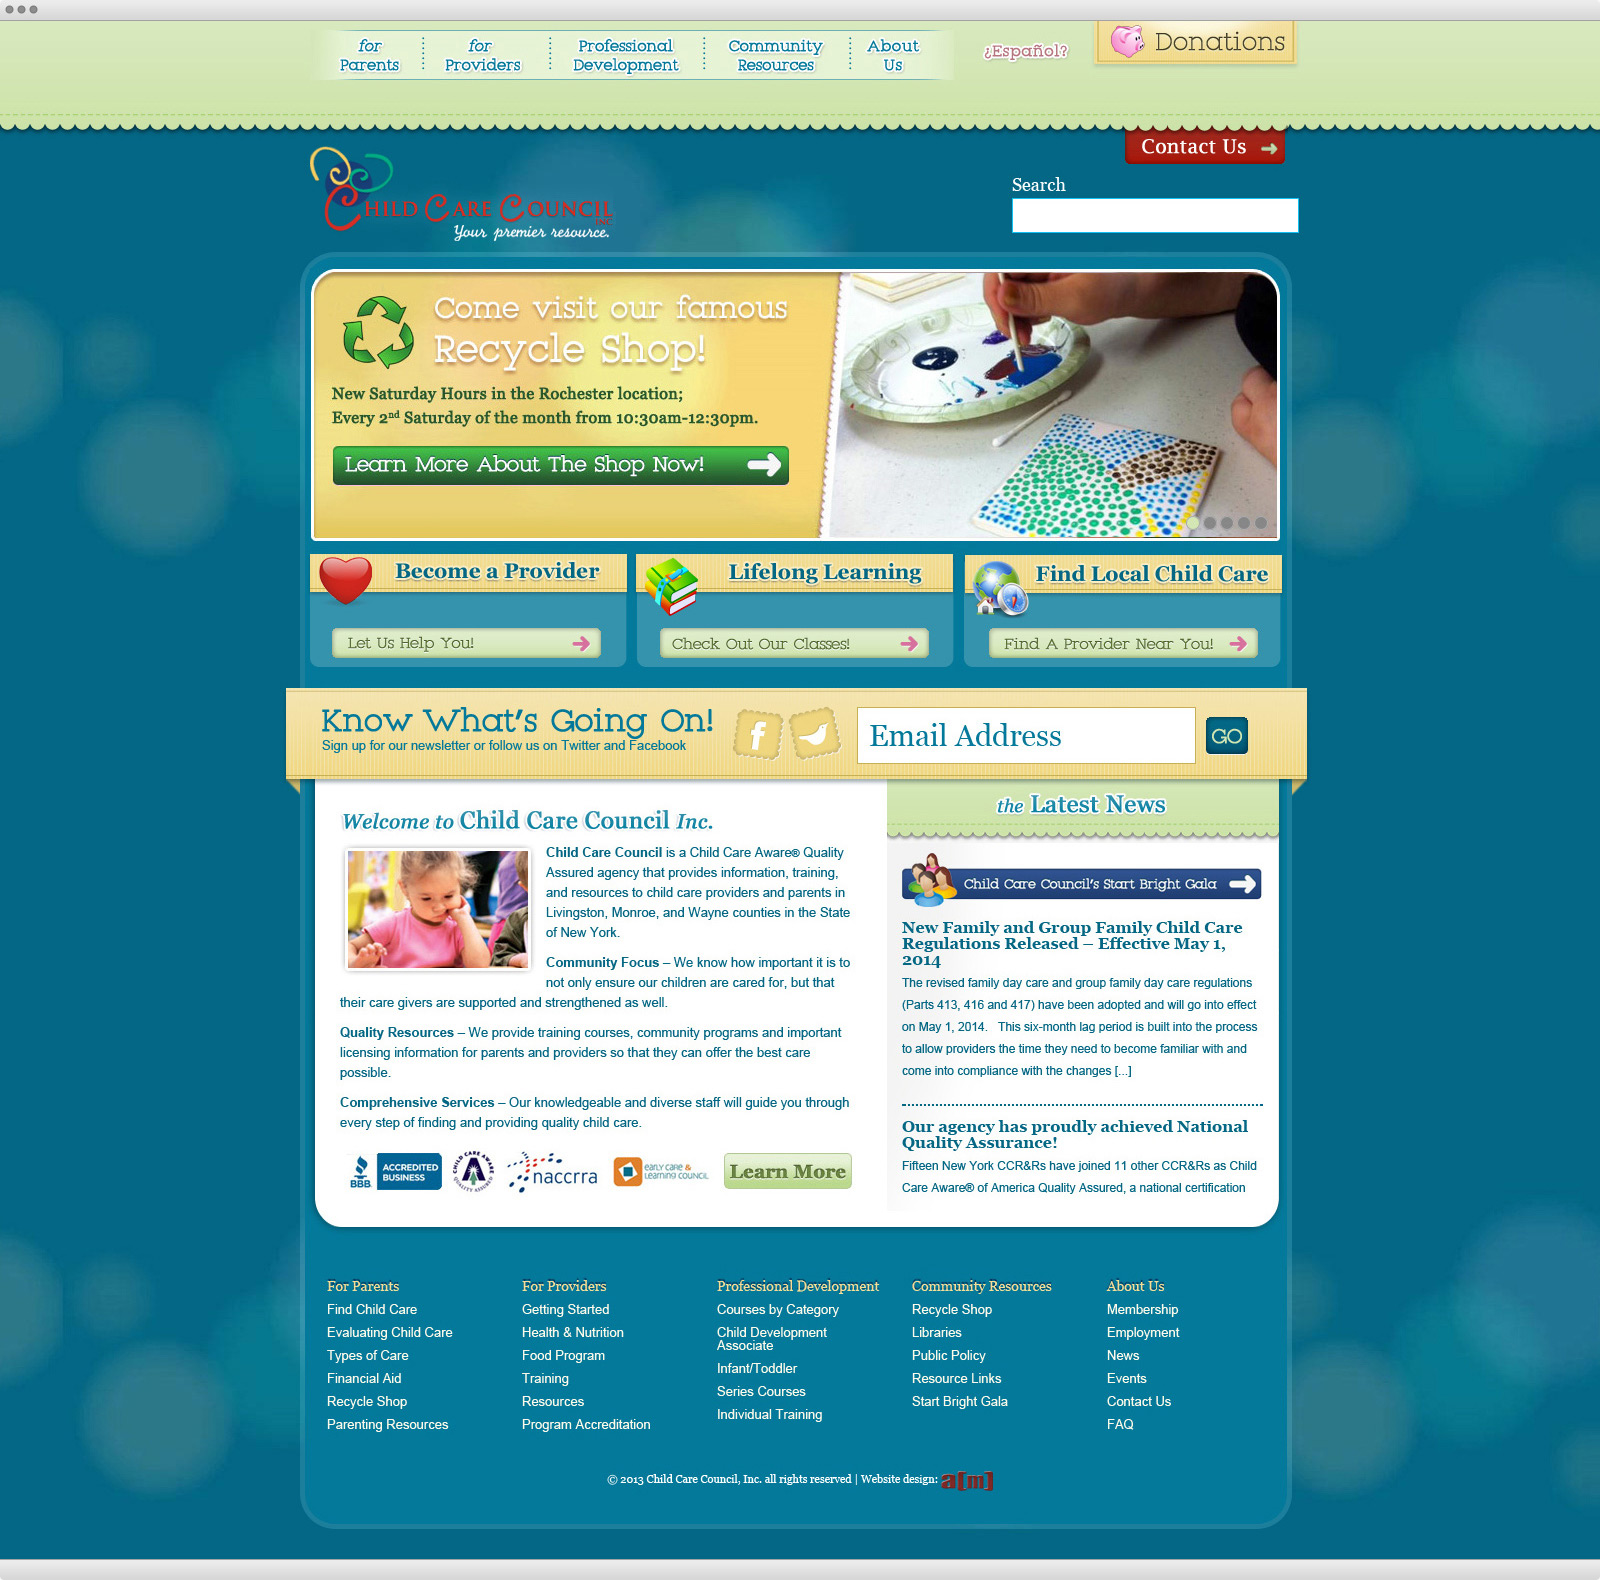 Child Care Council website design